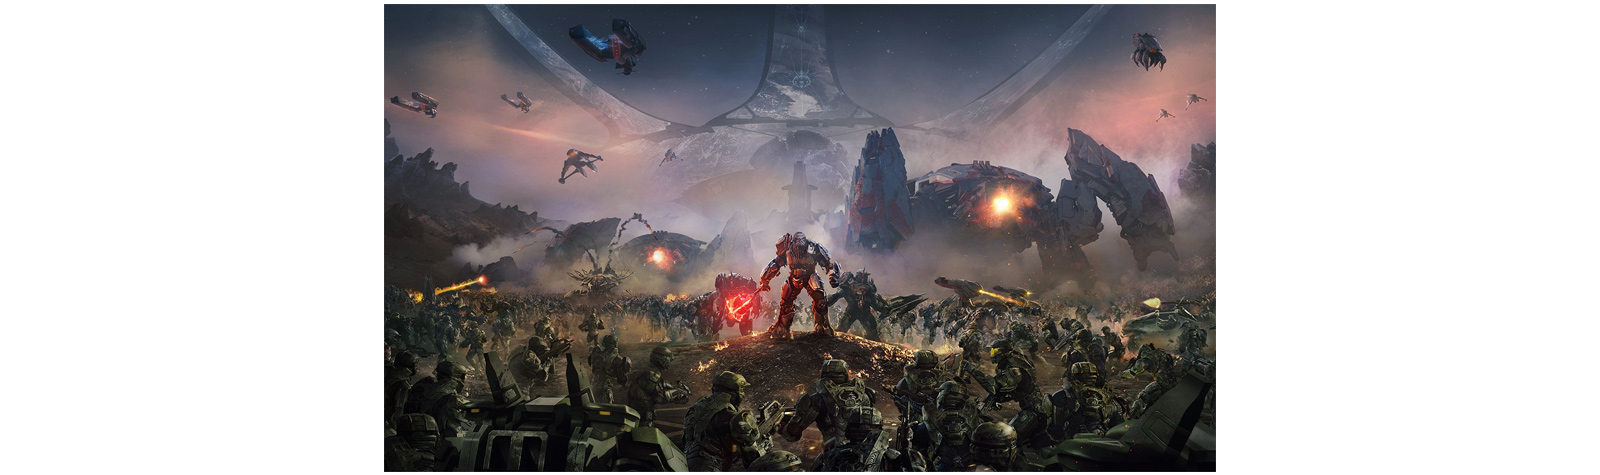 Halo Wars 2 January Update